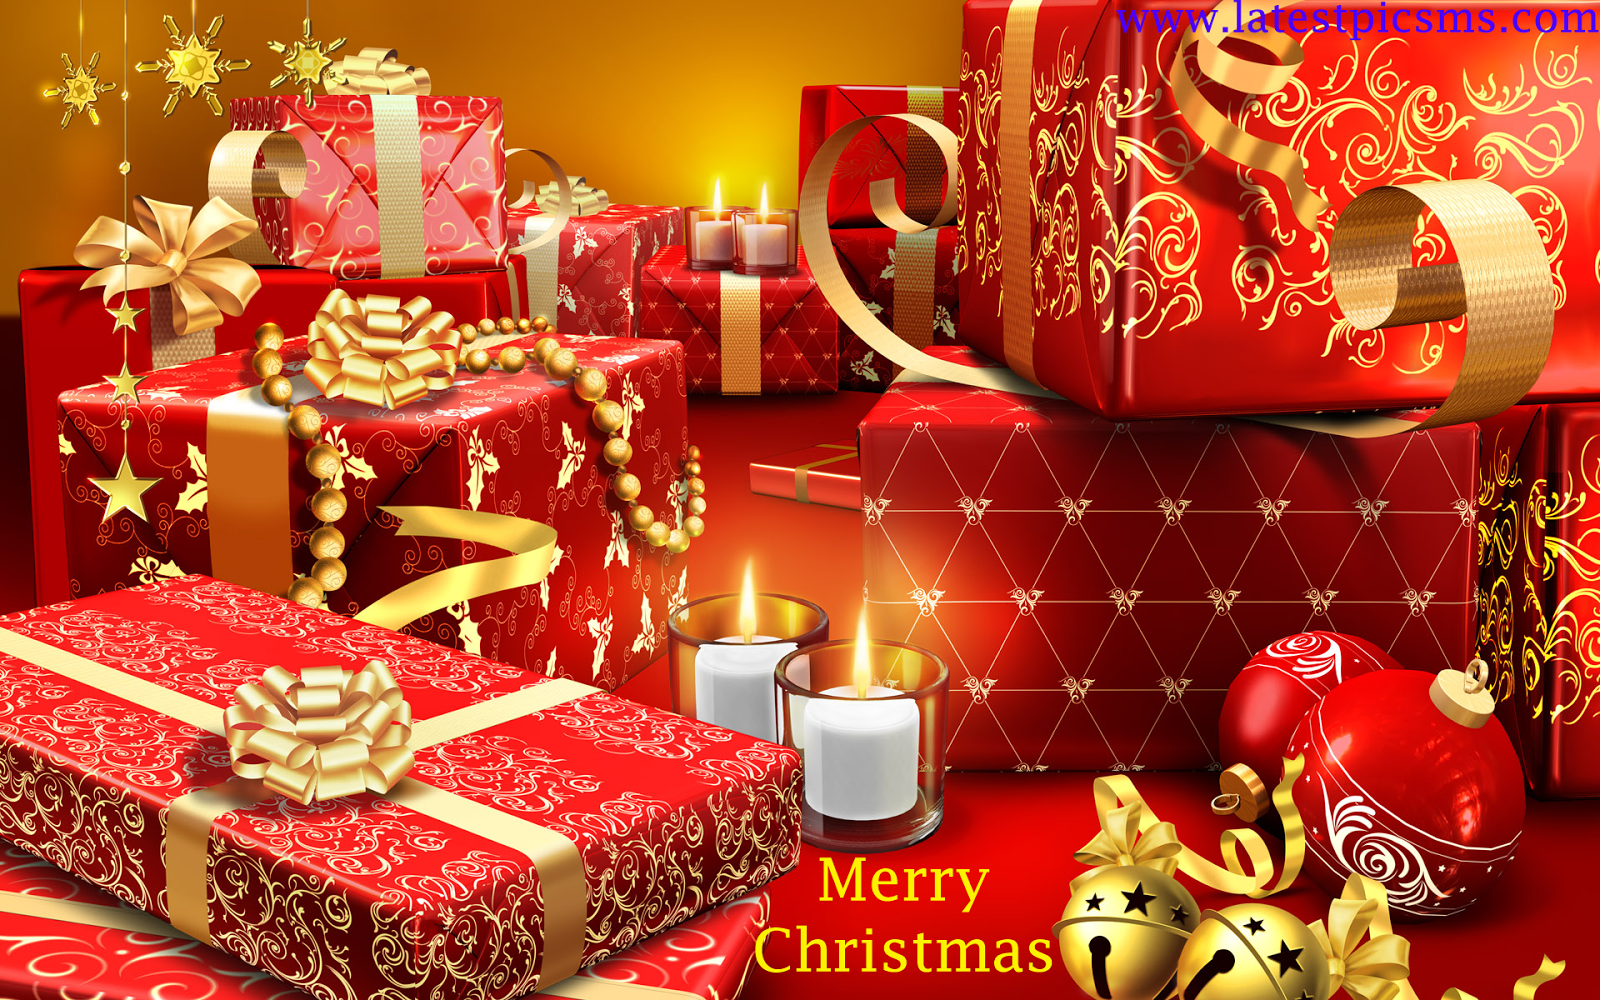 Best christmas Pictures HD Christmas Wallpapers Desktop Backgrounds Christmas Picture%2Bnice%2Bgifts%2Bof%2Bx mas - Have a Happy Holiday of Merry Christmas Enjoy! for Whatsapp & Fb